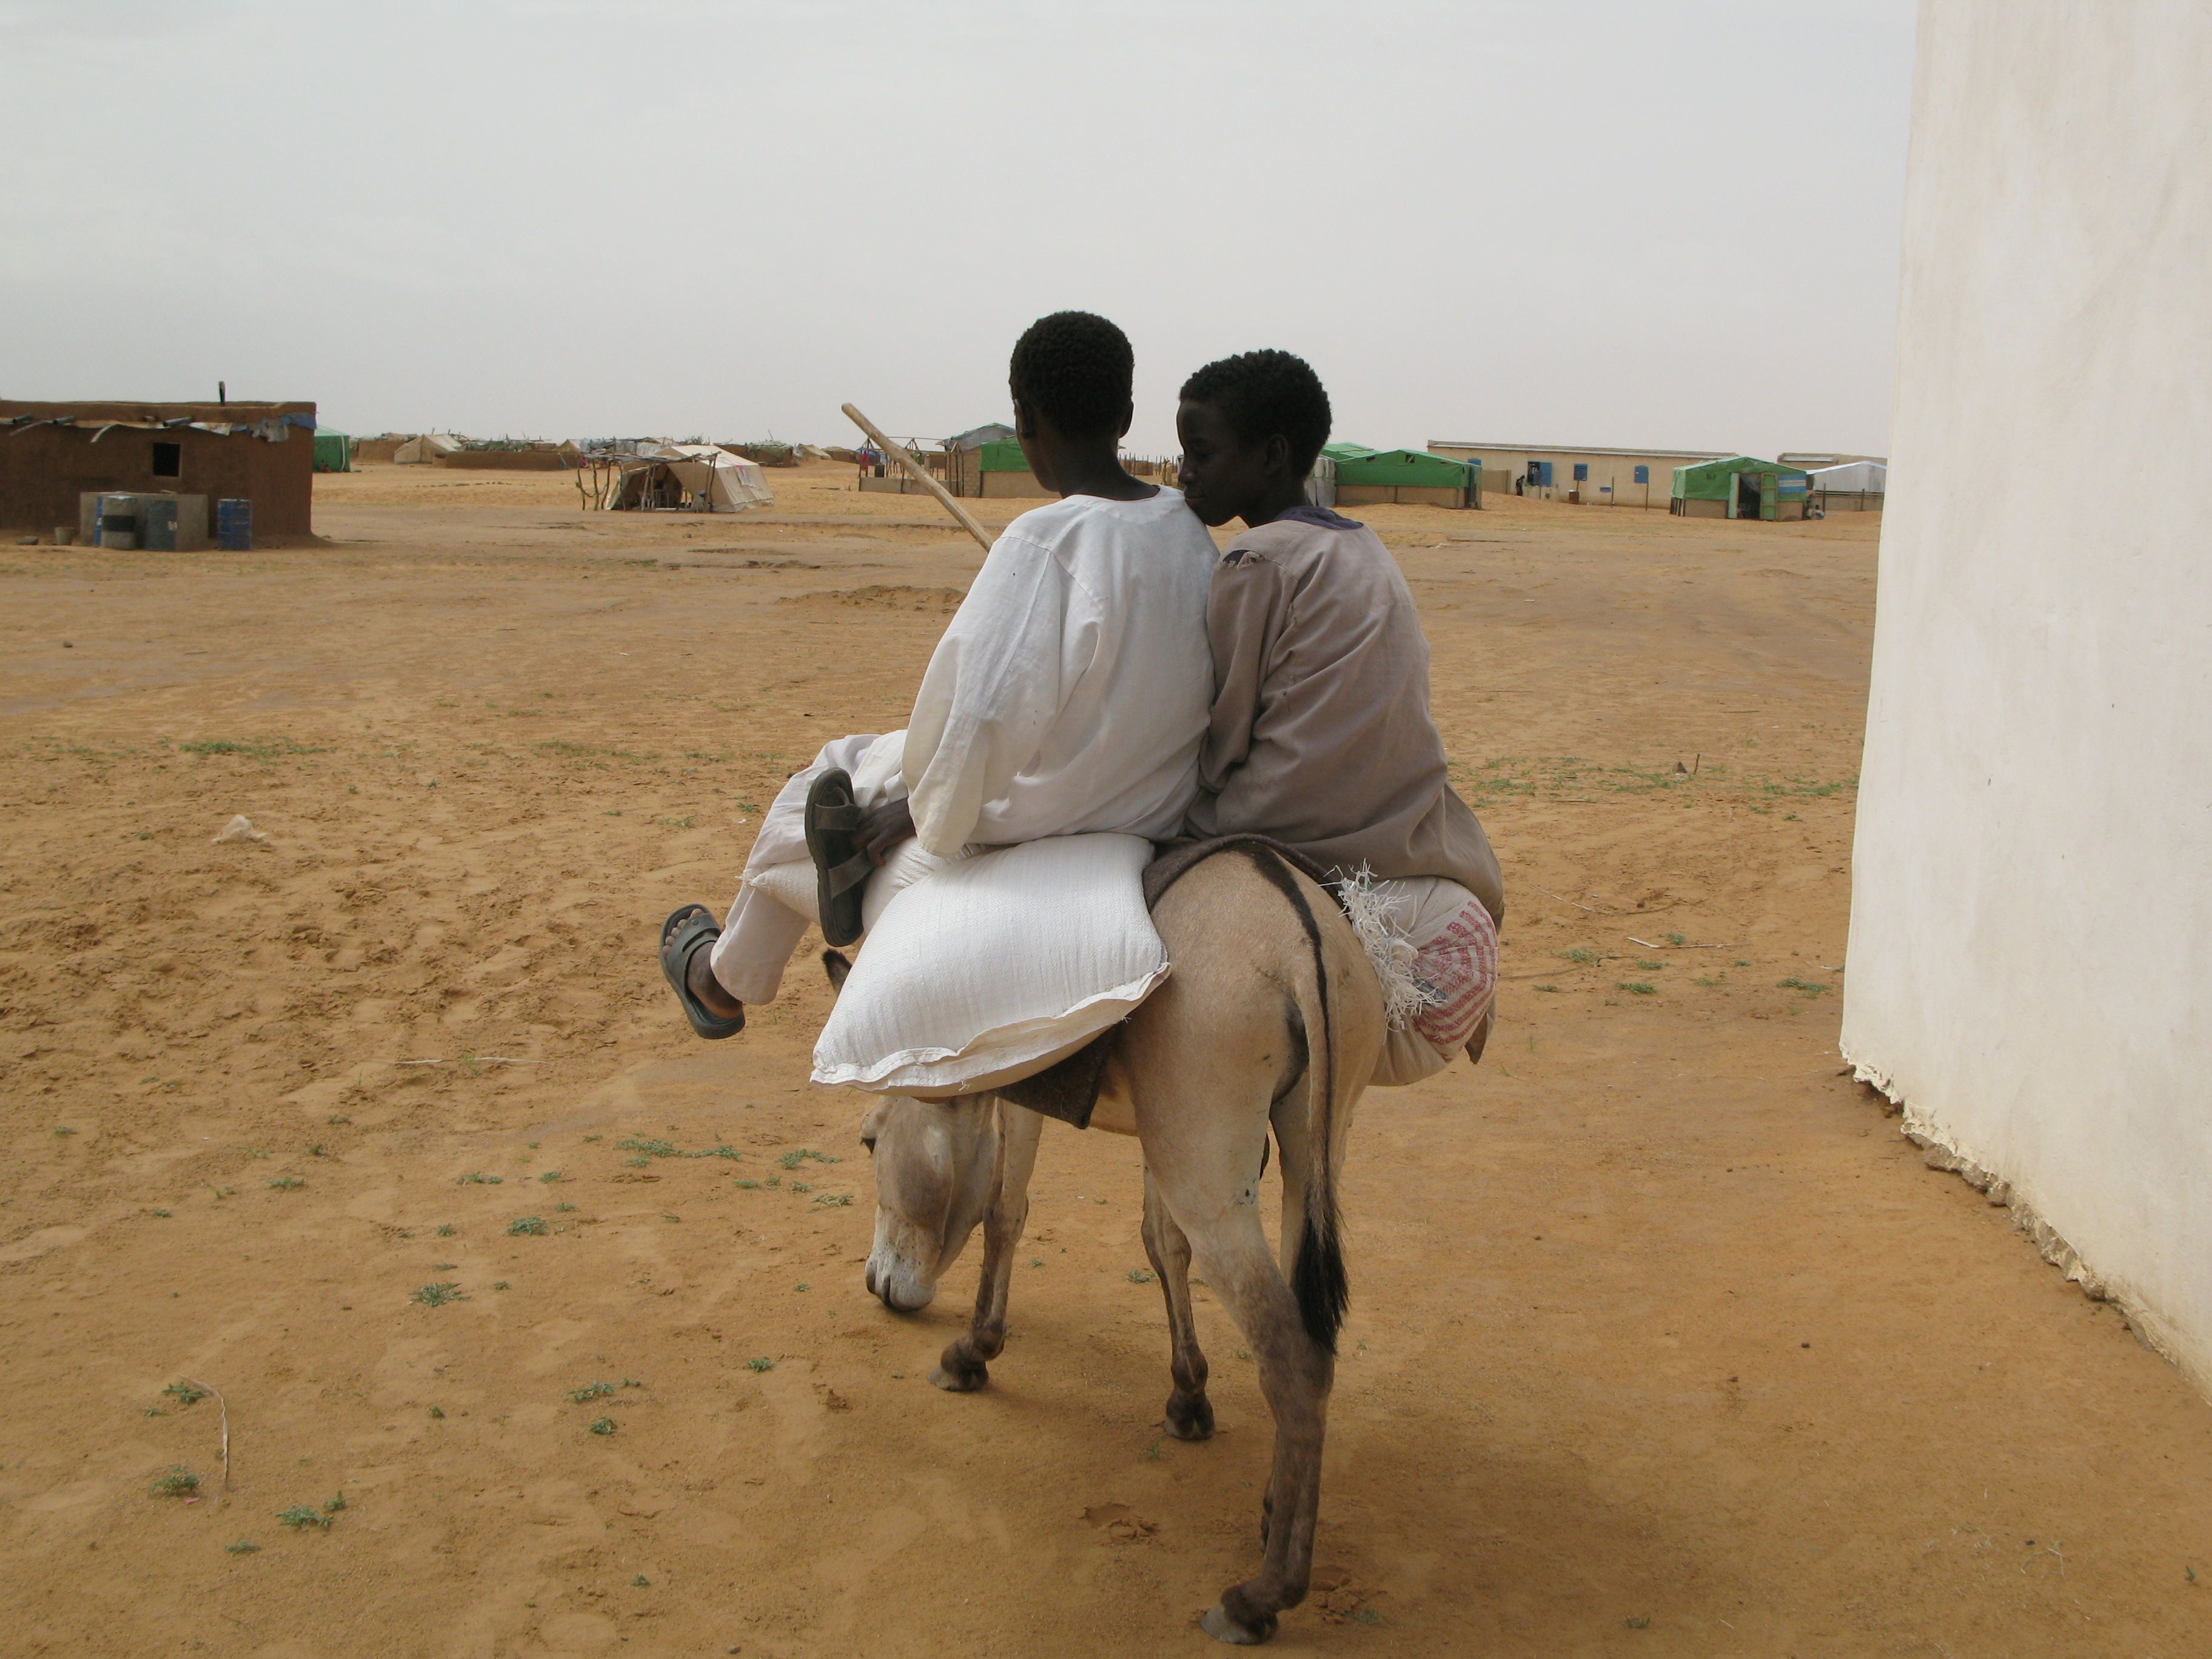 Two boys ride a donkey outside Oure Cassoni refugee camp in Chad